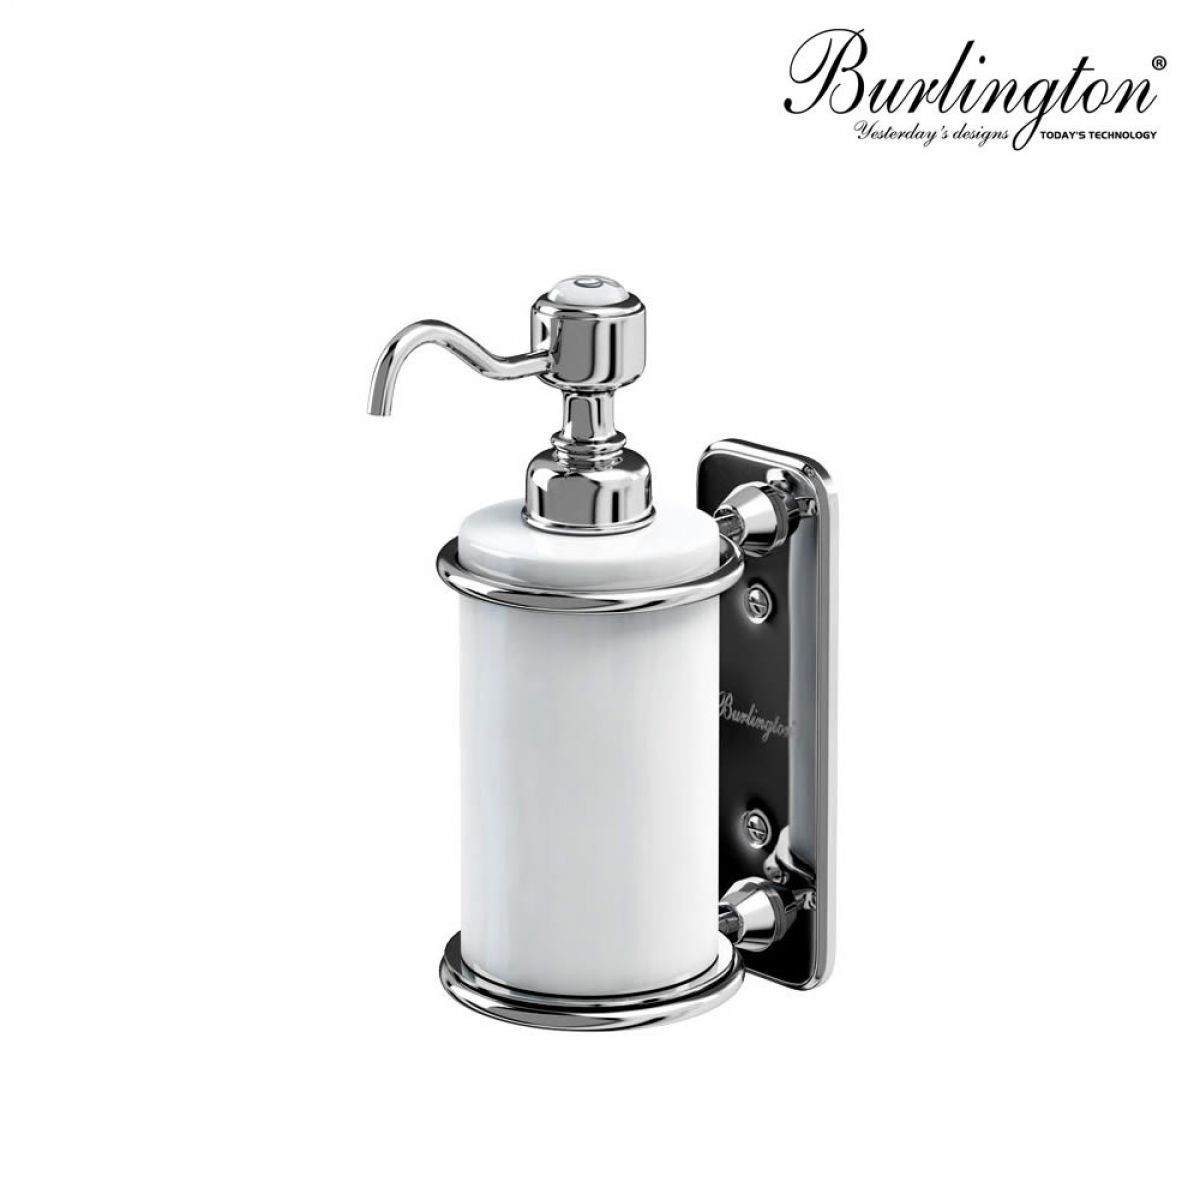 Vintage Bathroom Soap Dispenser Burlington Traditional Wall Mounted Liquid Soap Dispenser